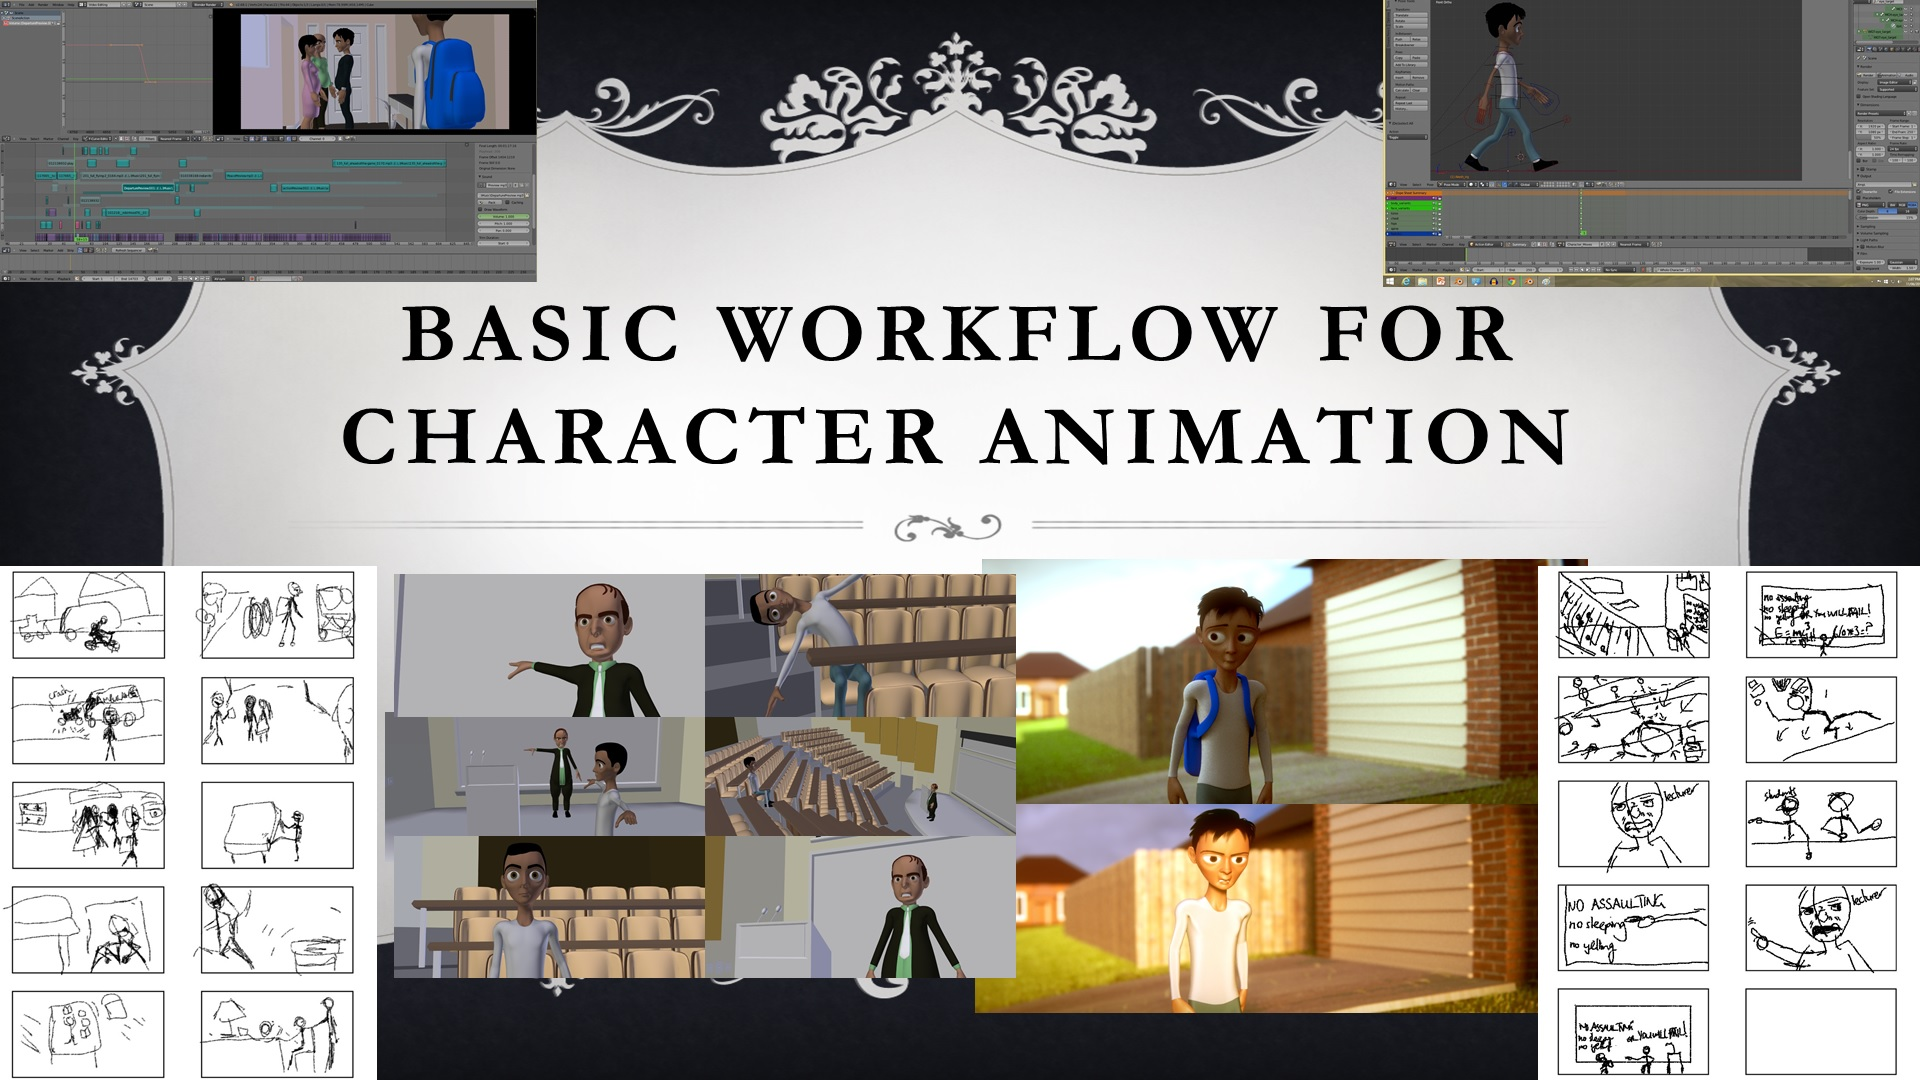 Workflow for Character Animation (Blender Animation Tutorial for Beginners!)